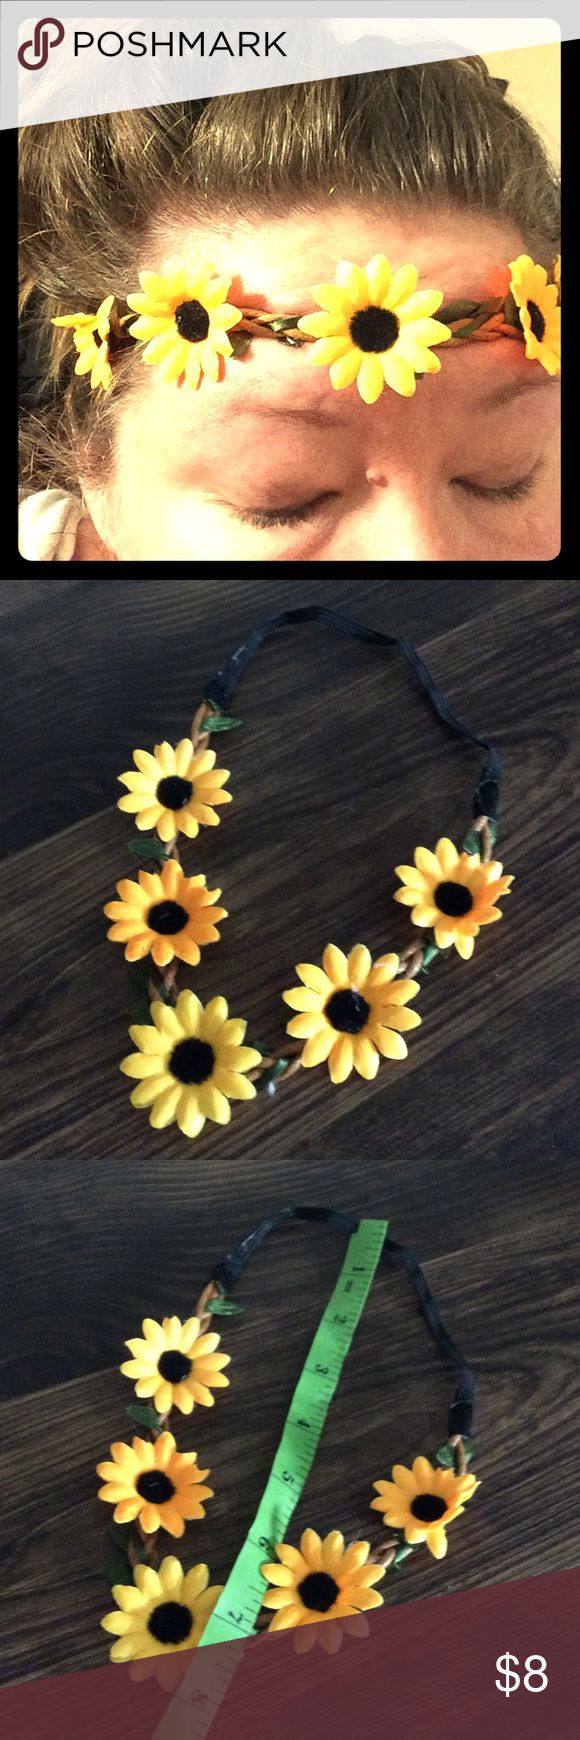 Sunflower Boho Chic Stretch Hair Band Headband This headband is beautiful! It stretches to fit virtually anyone. I actually have a large head and it fits me too. ☺️ Bundle up on our accessories and save! NeatandNice Accessories Hair Accessories